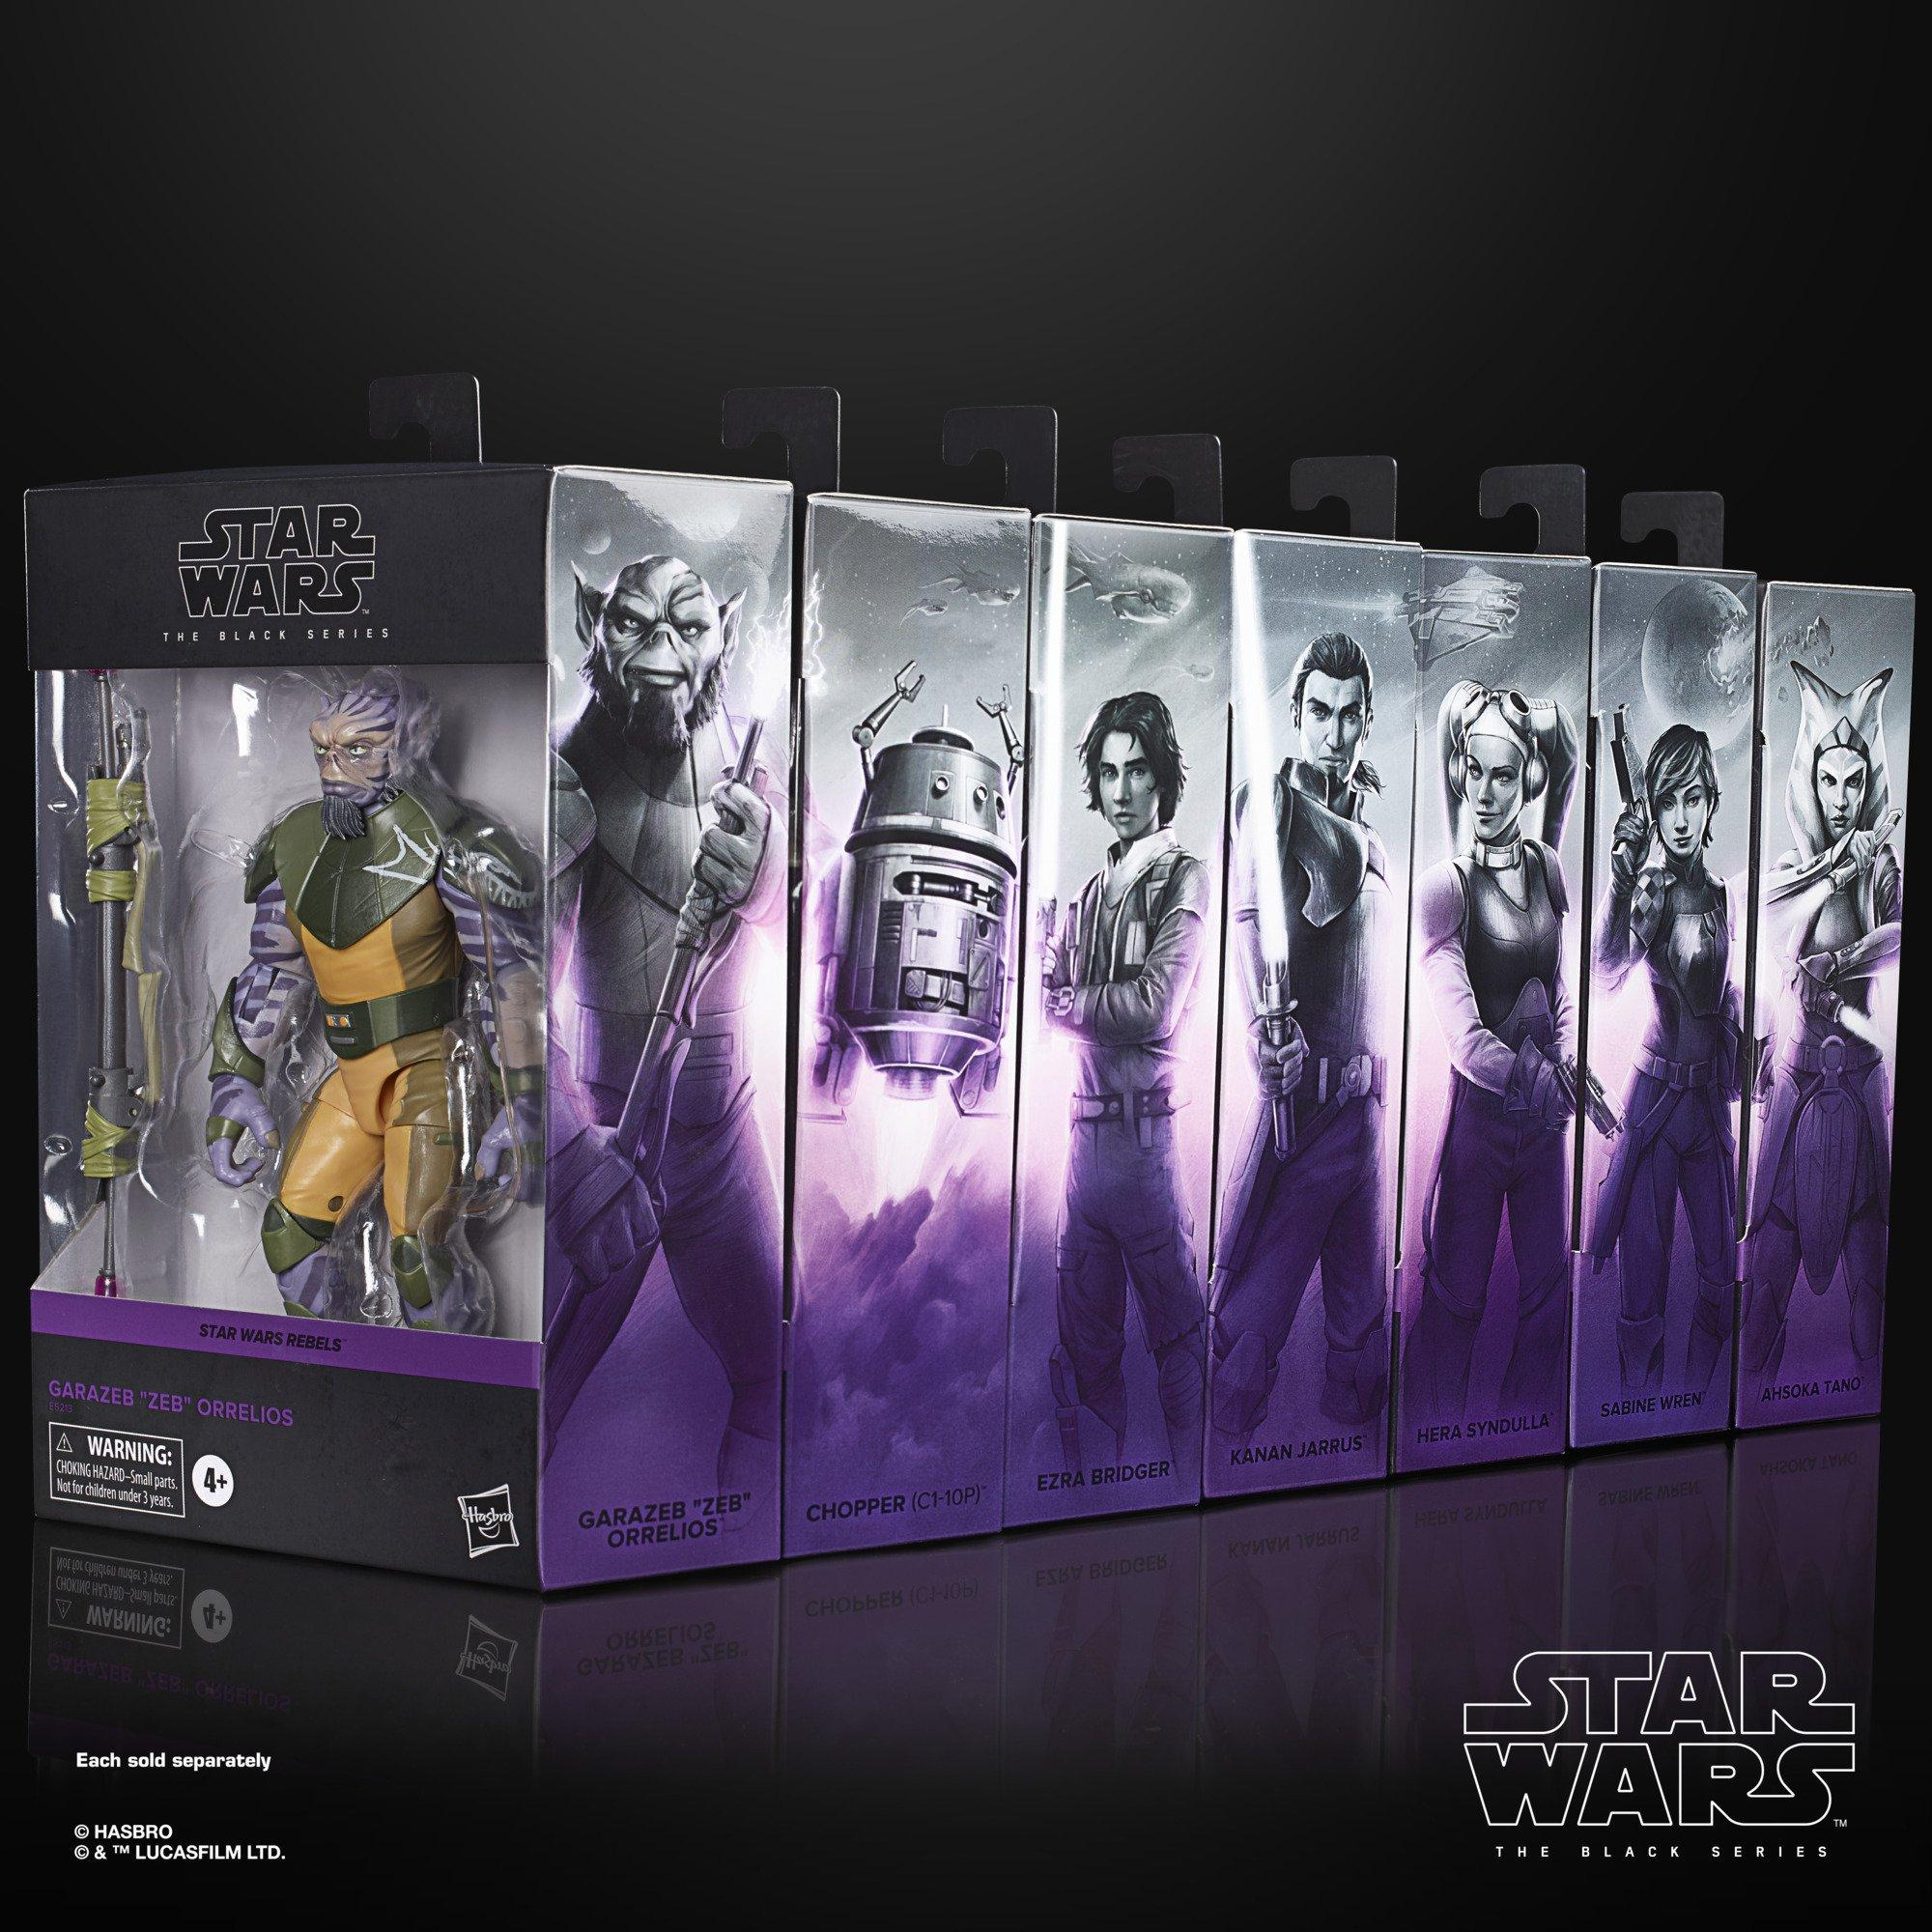 Star Wars Rebels The Black Series Deluxe Action Figure Bundle